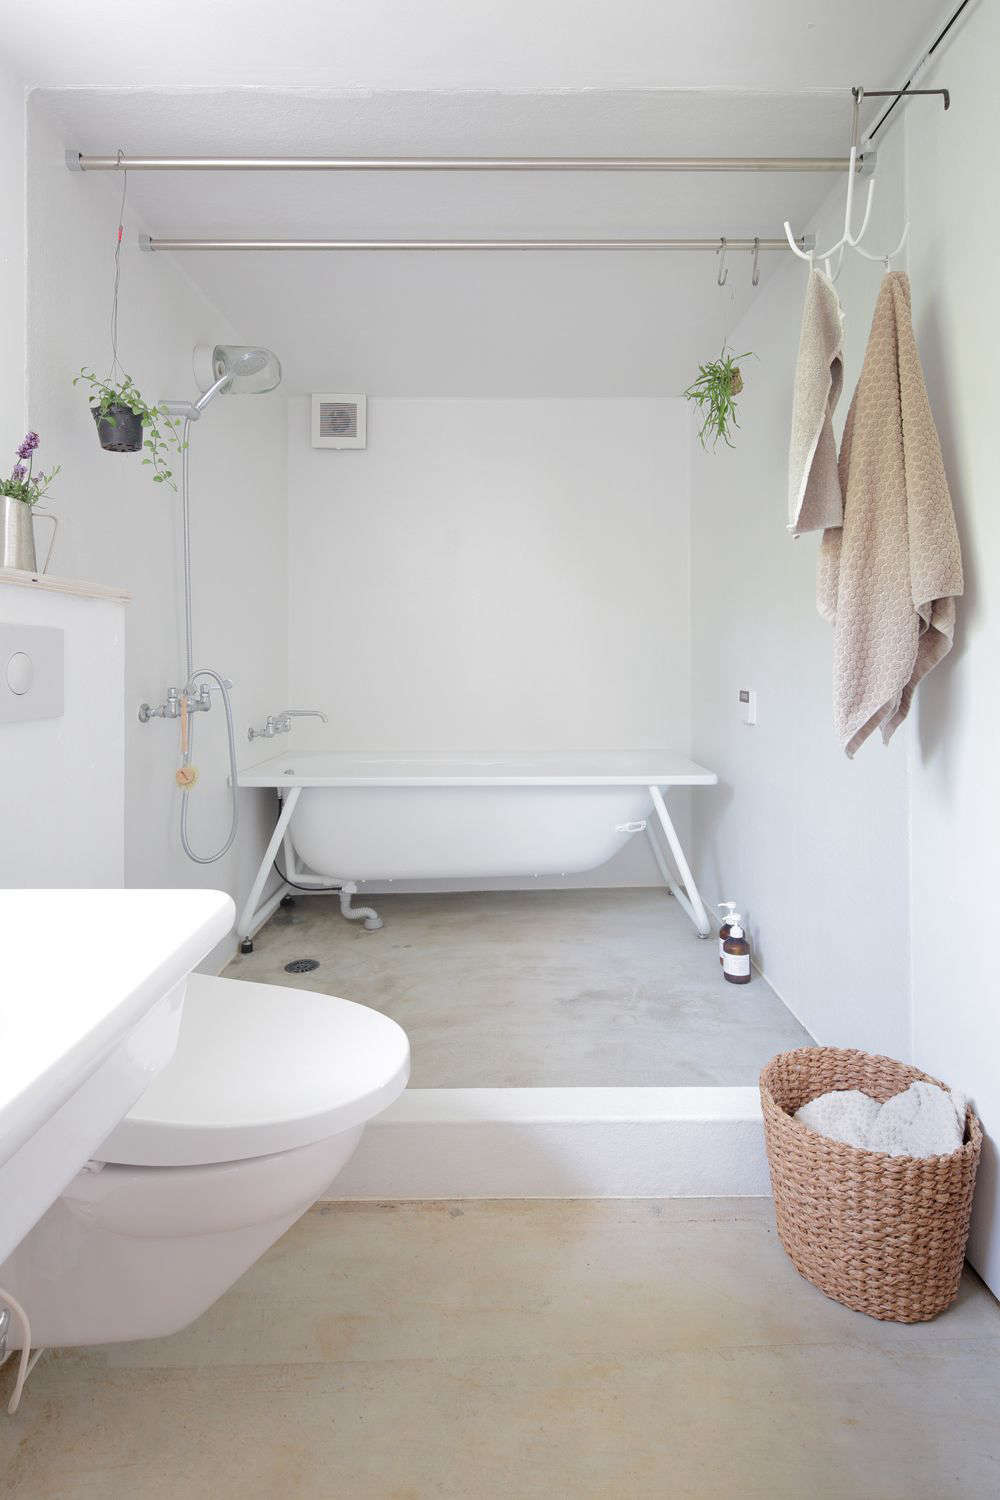 The rakish tub is a Kaldewei TForm Bathtub, a model made to be inset but here used with an exposed frame.